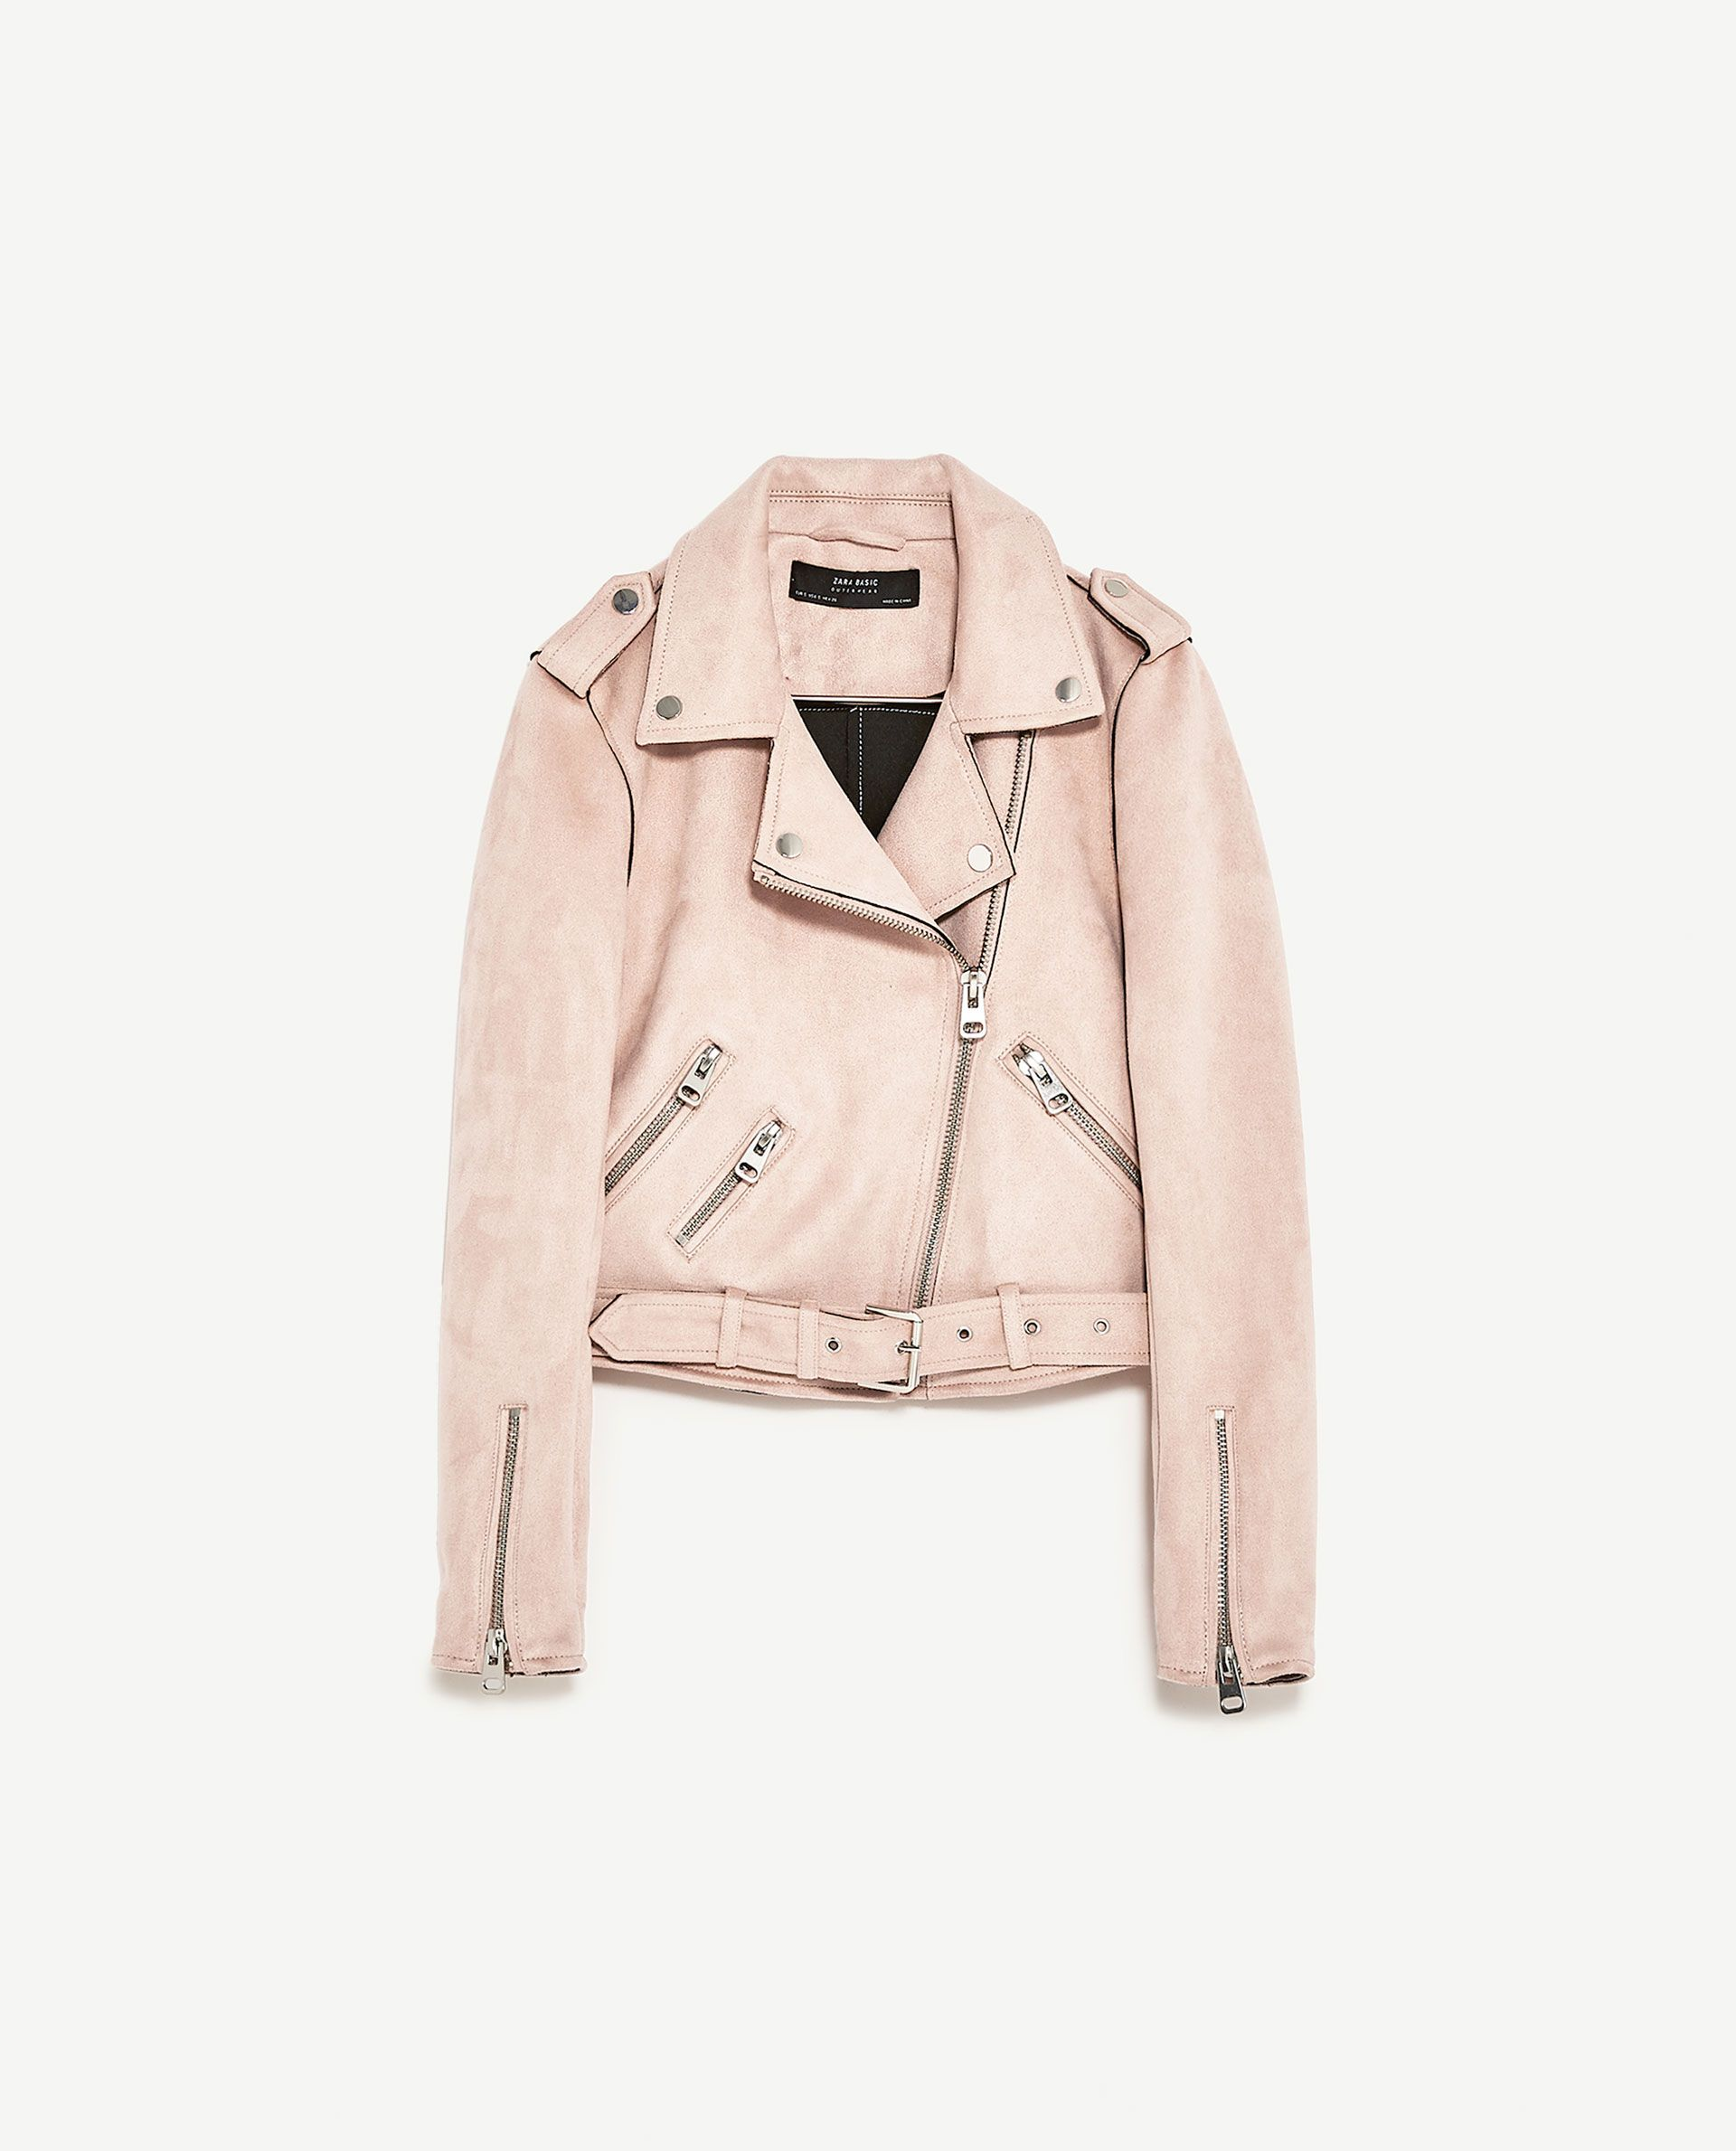 23db4912 JACKET WITH ZIPS DETAILS 6,990 RSD COLOR: Pink 6318/021 | Zara 2017 ...